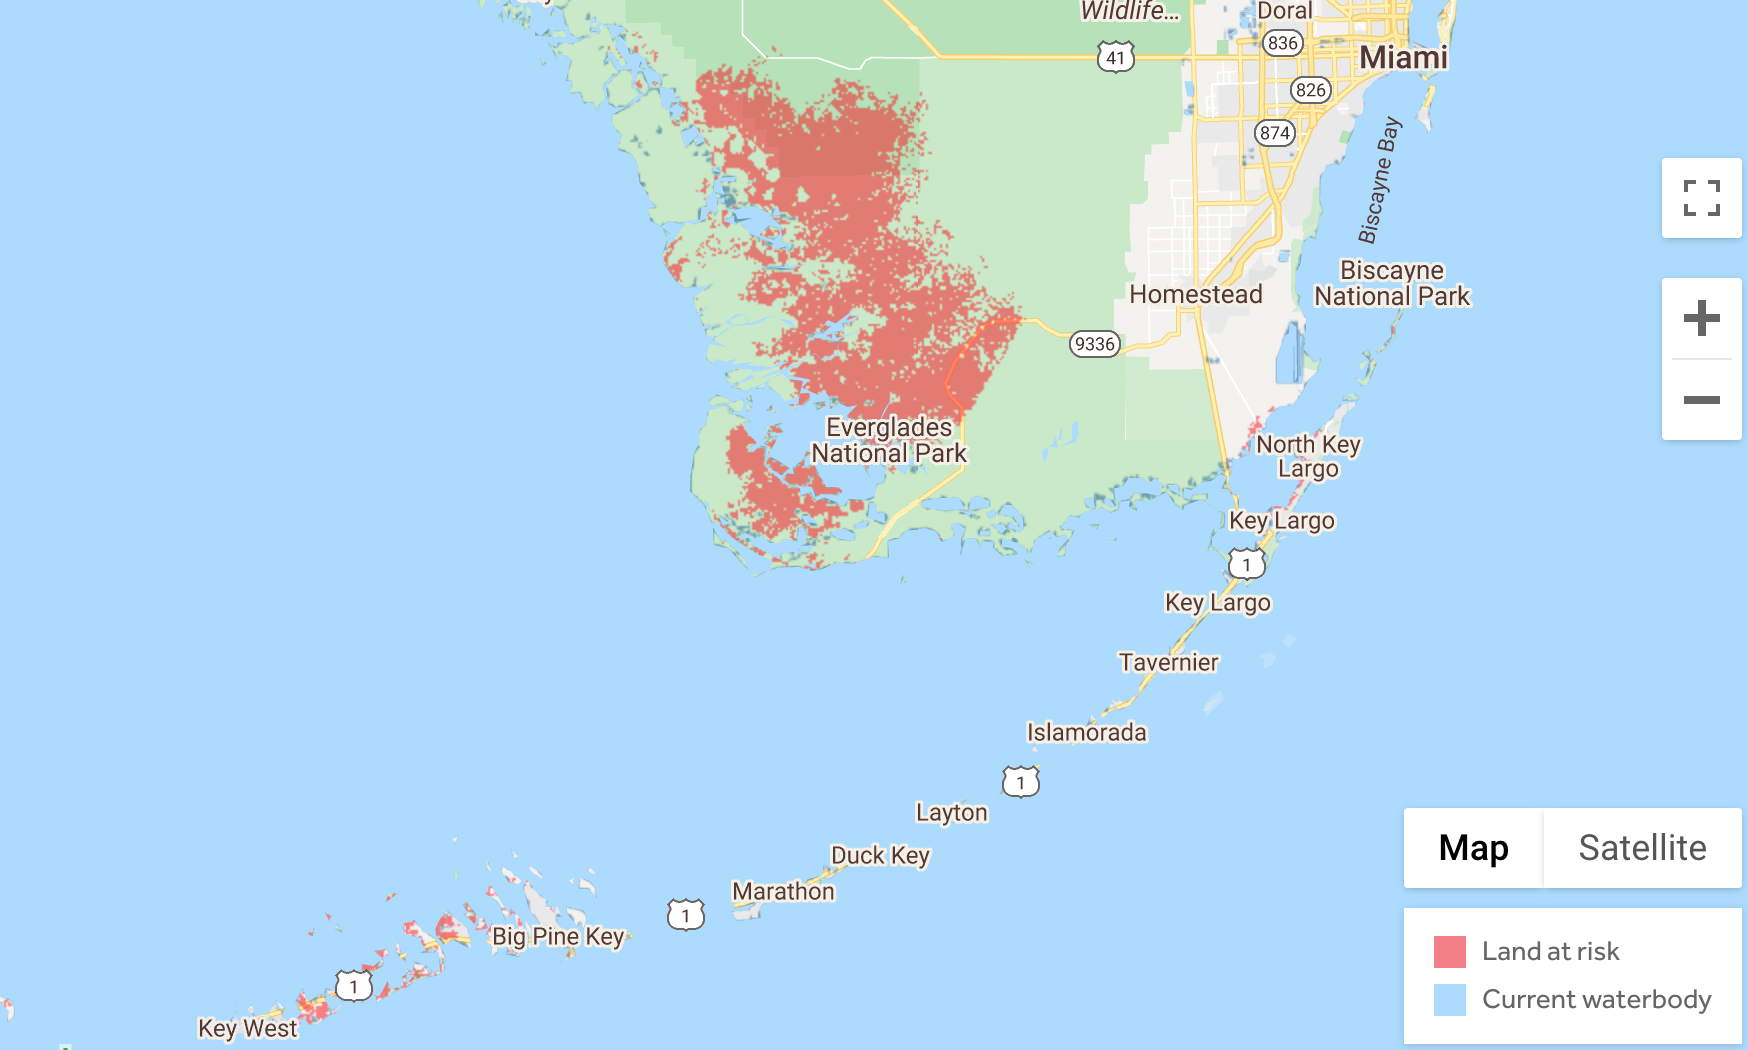 Image of southern Florida with sea level rise exposure with new CoastDEM data by 2050 in red